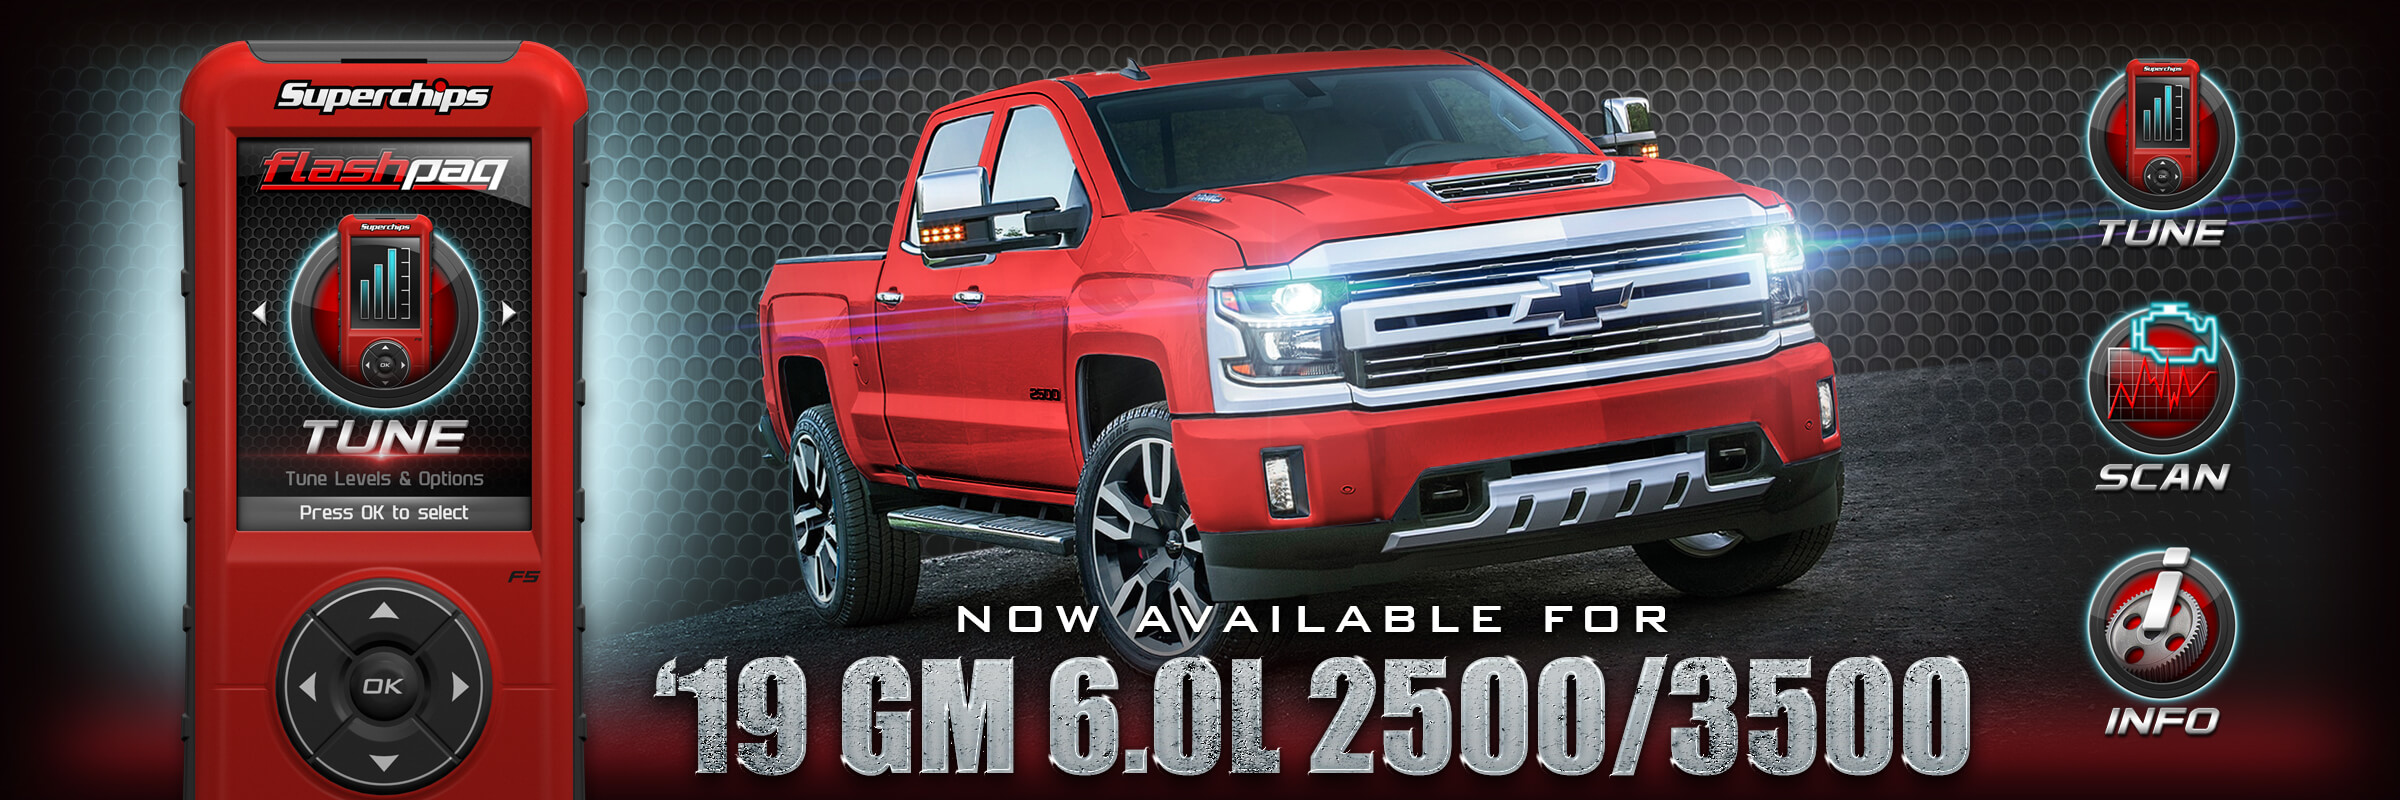 2019 6.0L GMC/Chevy Gas Tuning Now Available for 2500/3500 ...